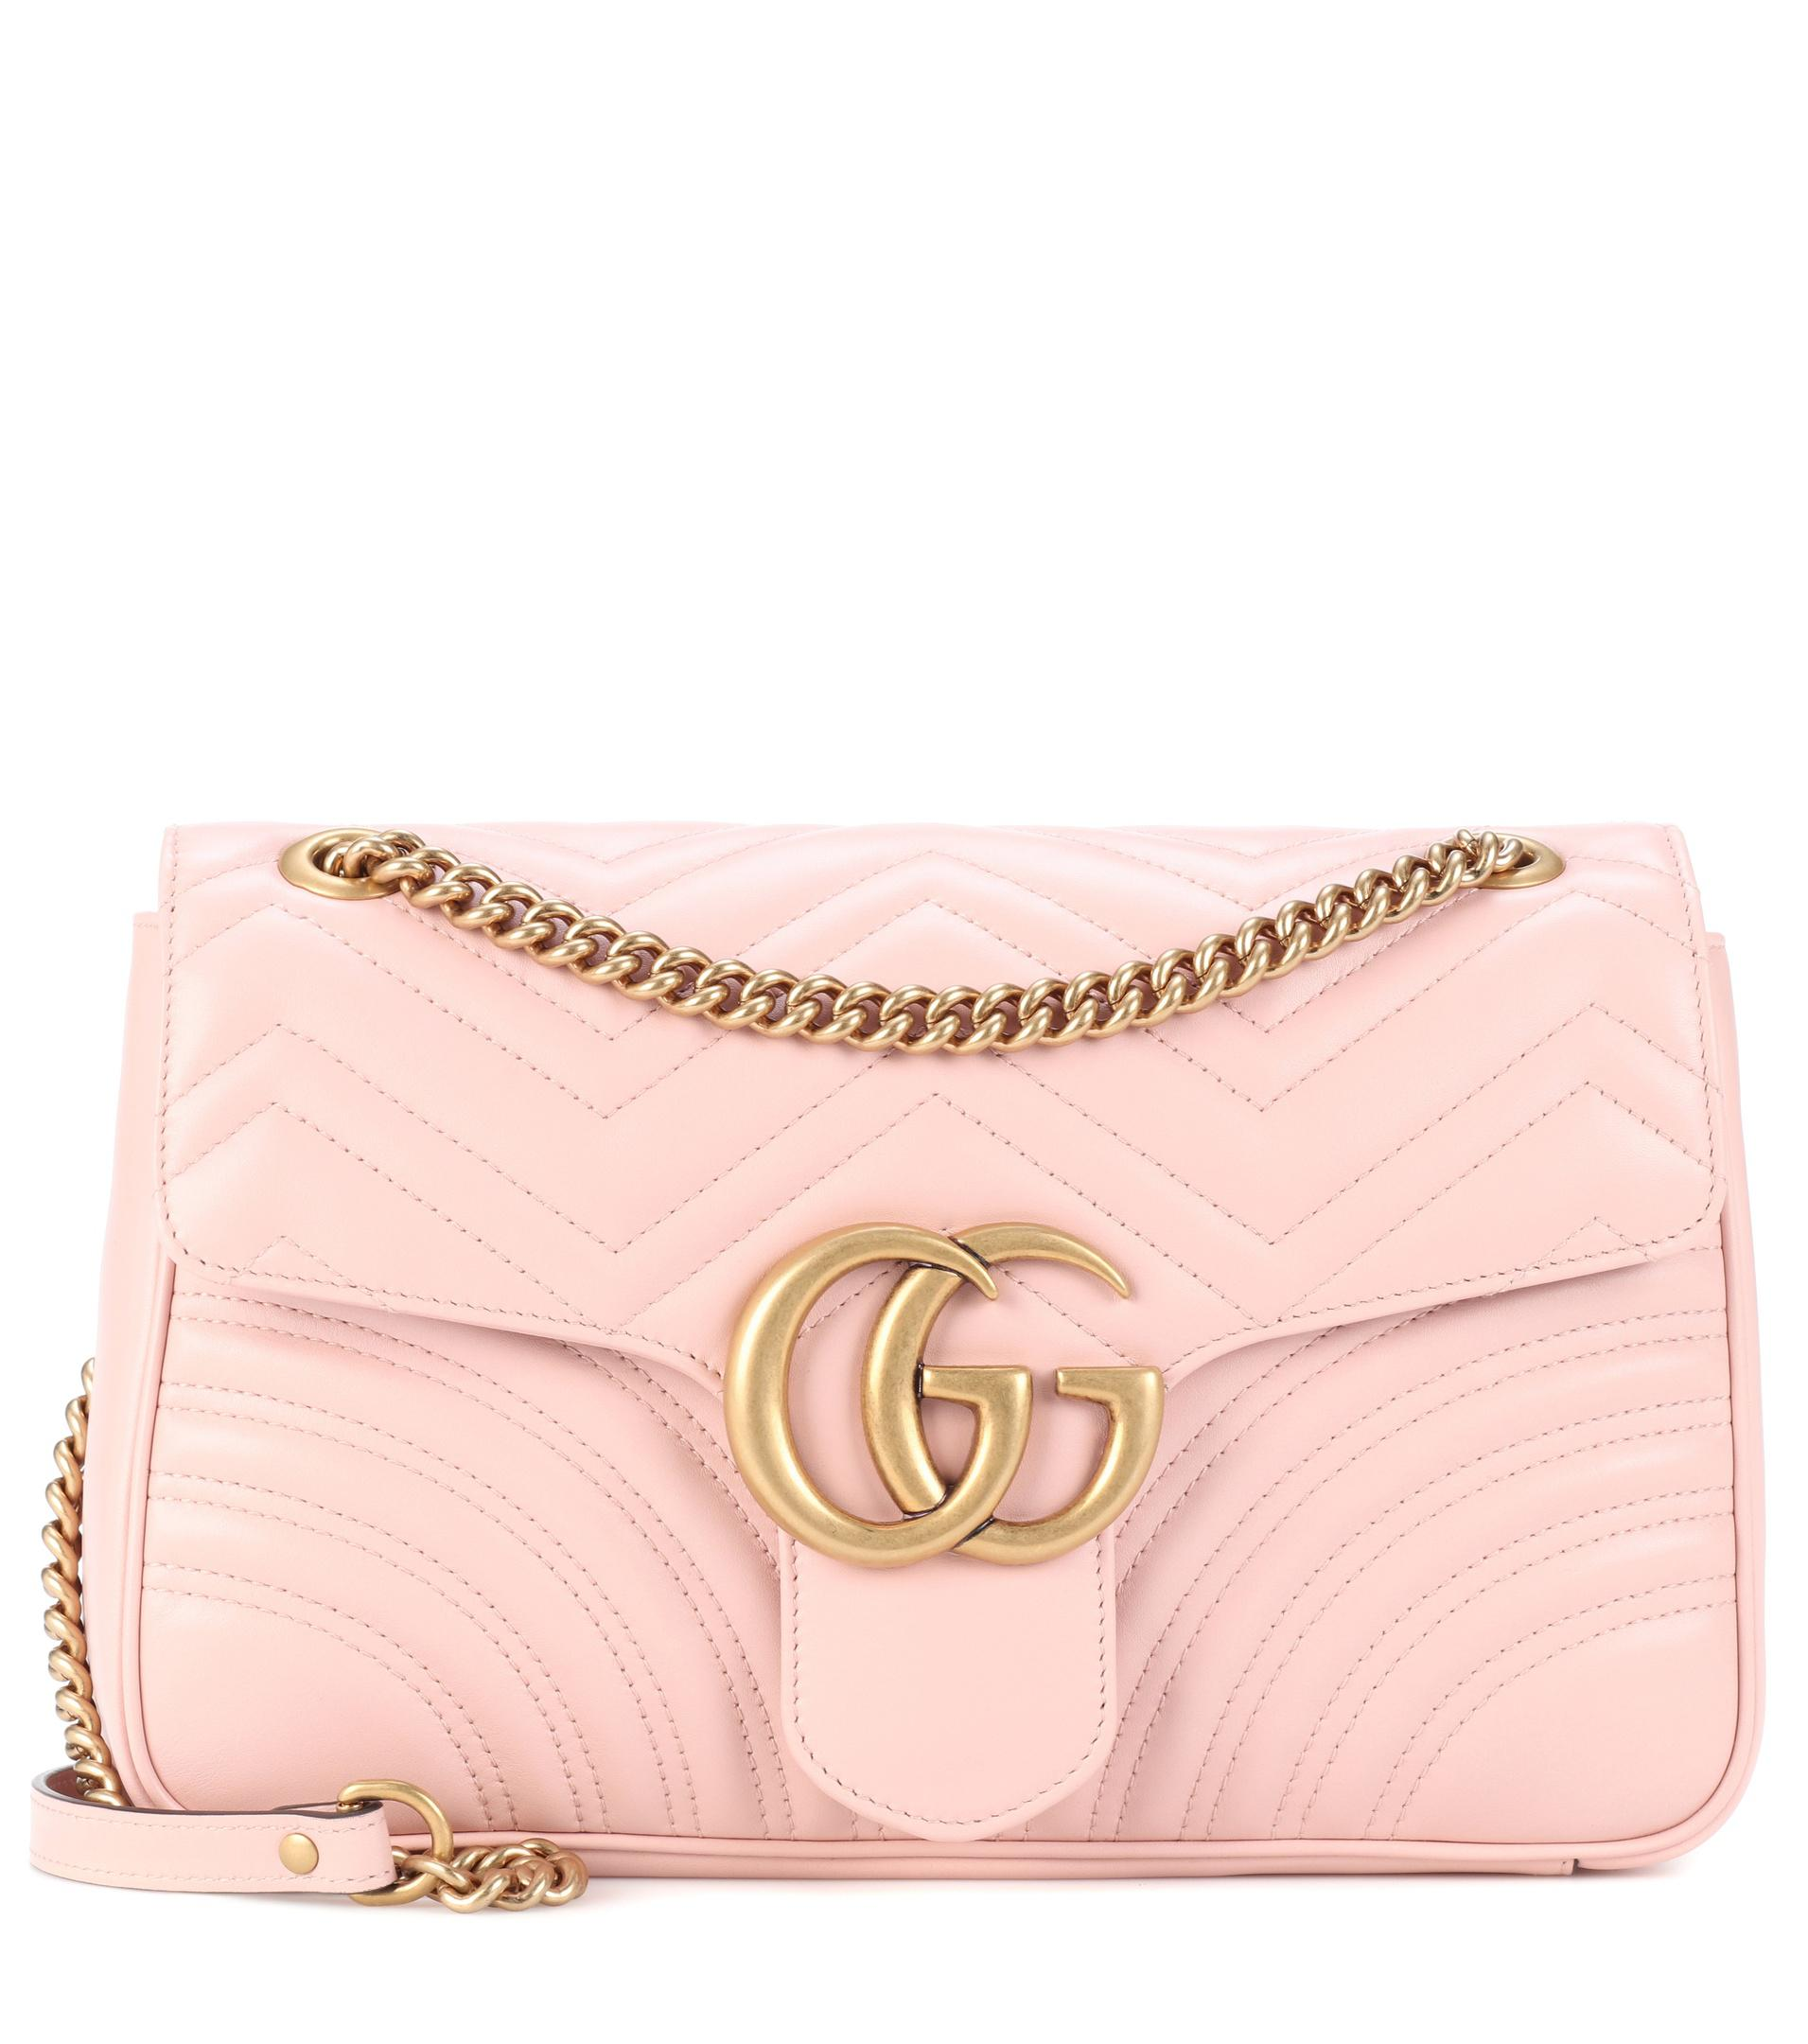 de2853f13f8 Gucci Gg Marmont Medium Matelassé Leather Shoulder Bag in Pink - Lyst